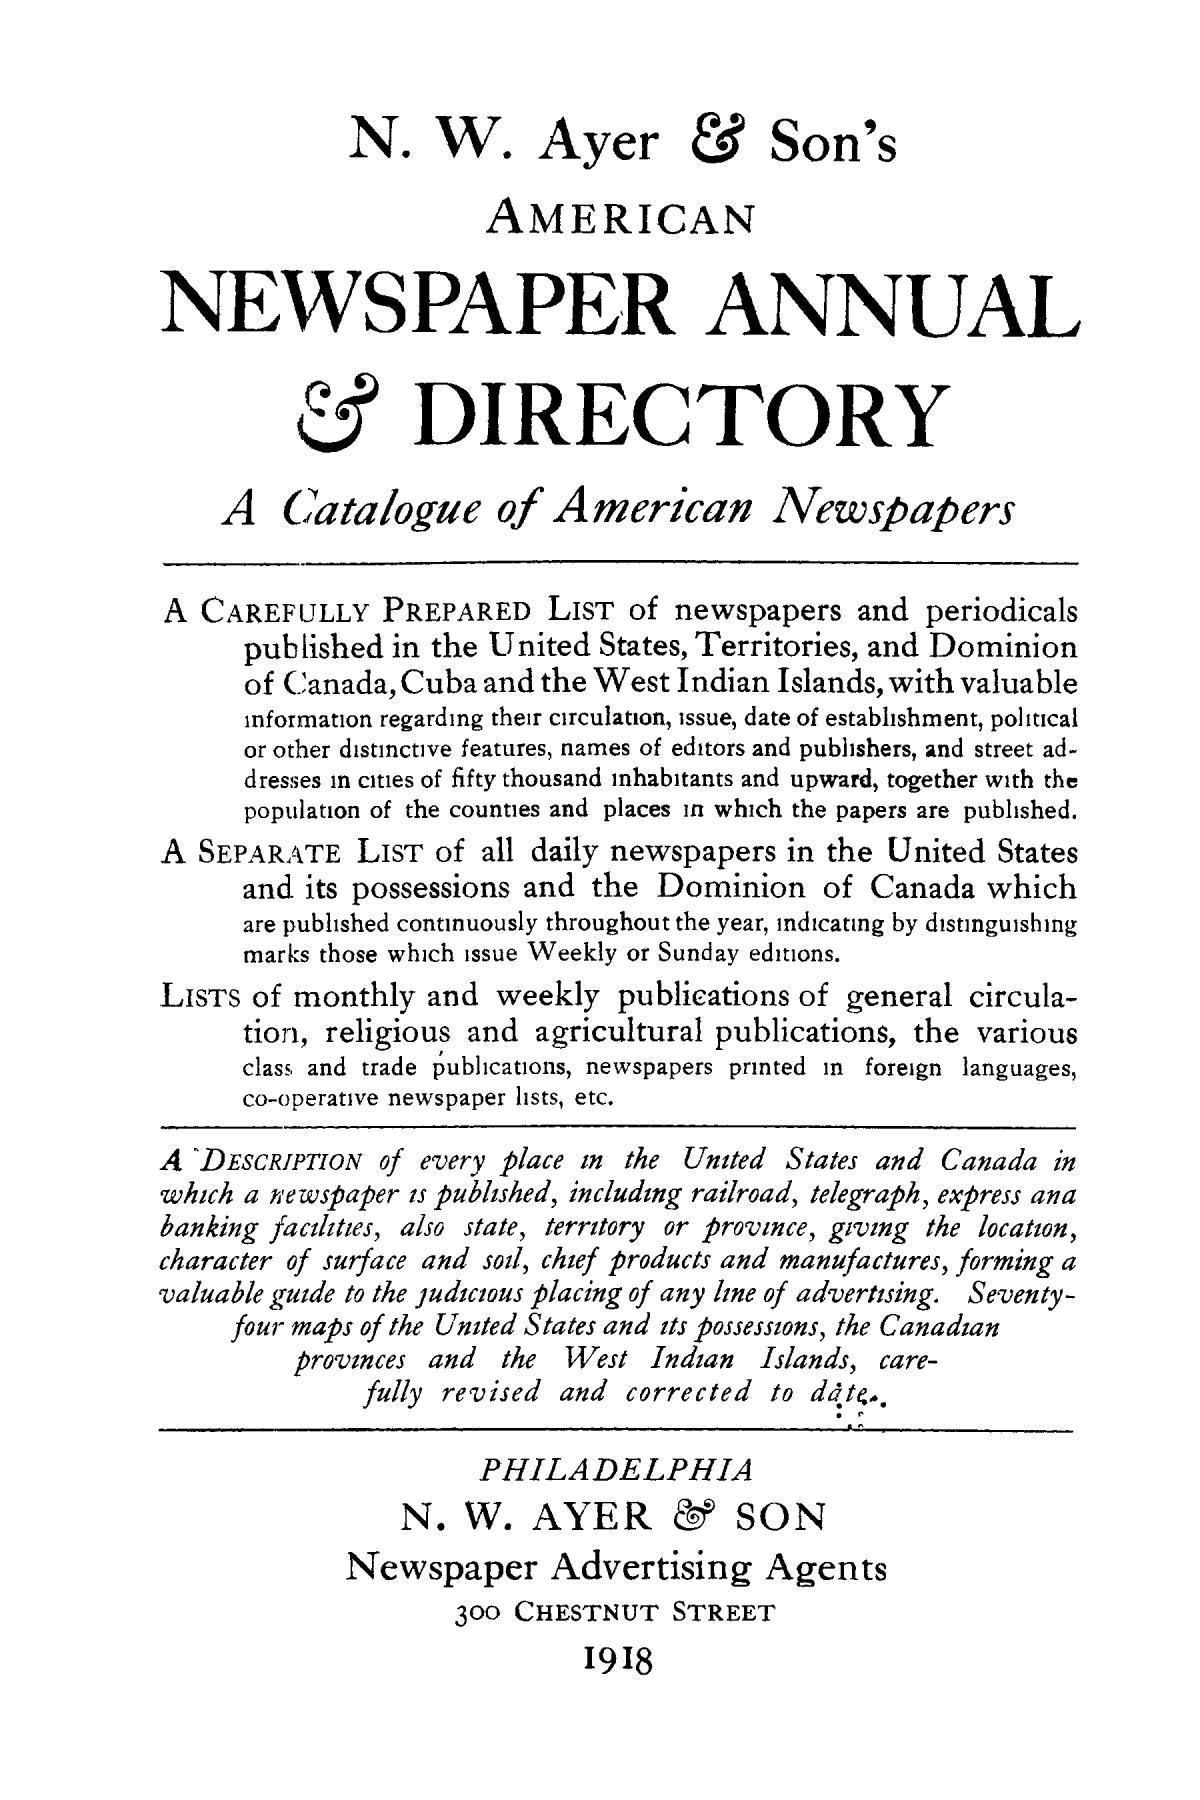 N. W. Ayer & Son's American Newspaper Annual and Directory: A Catalogue of American Newspapers, 1918, Volume 2                                                                                                      Title Page